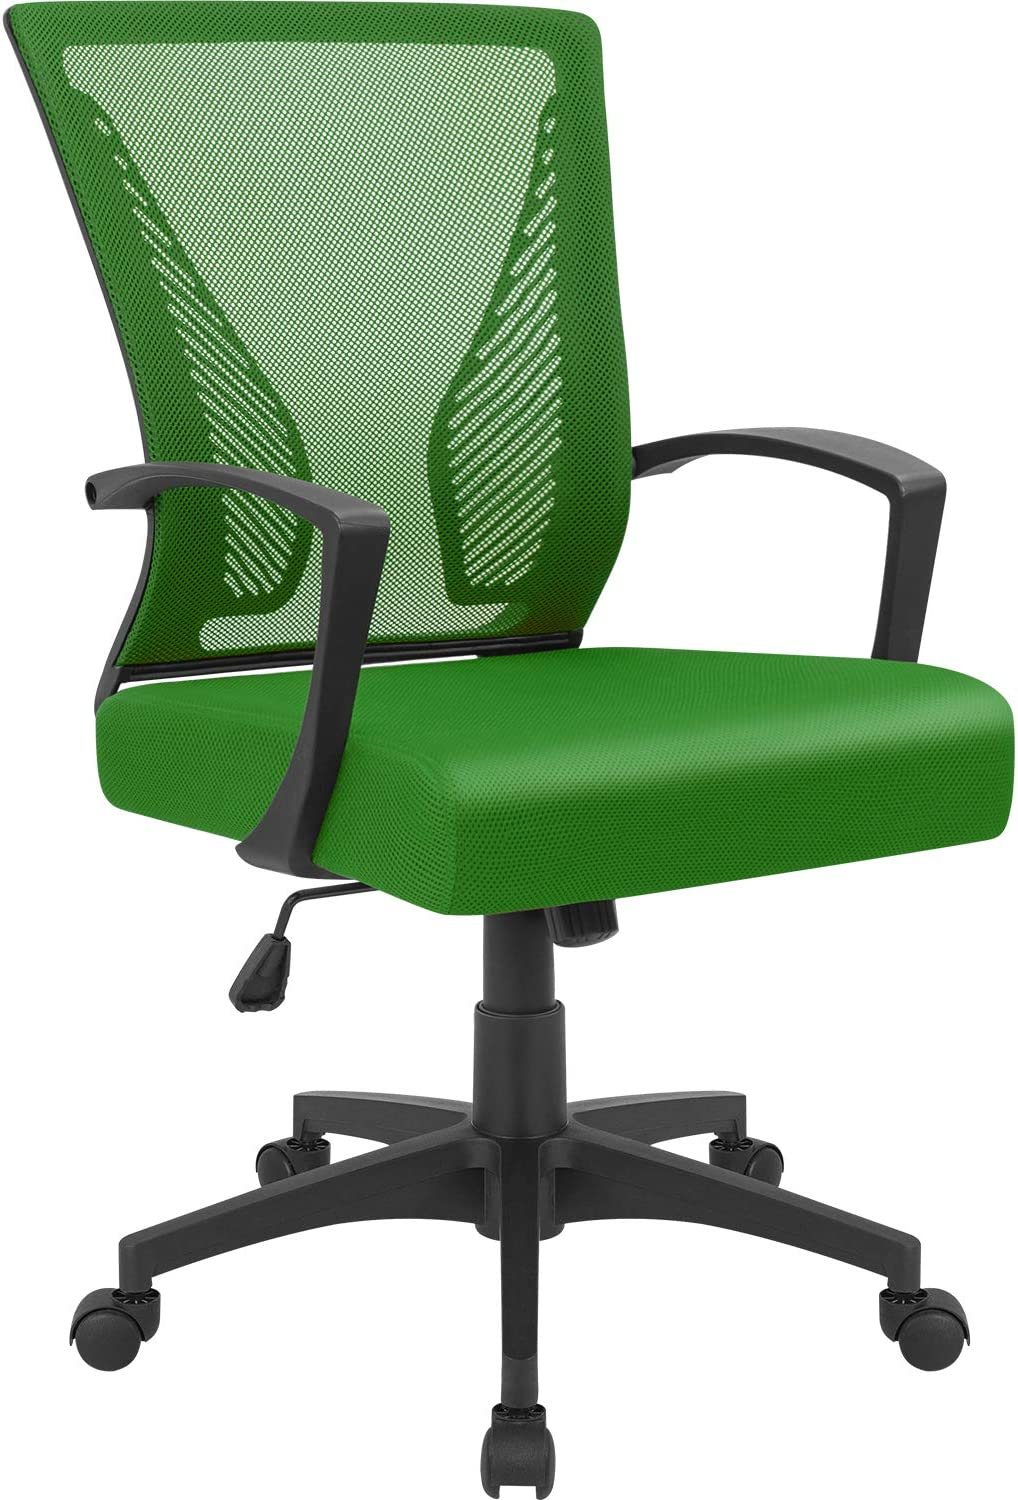 Furmax Office Chair Mid Back Swivel Lumbar Support Desk Chair, Computer Ergonomic Mesh Chair with Armrest (Green)